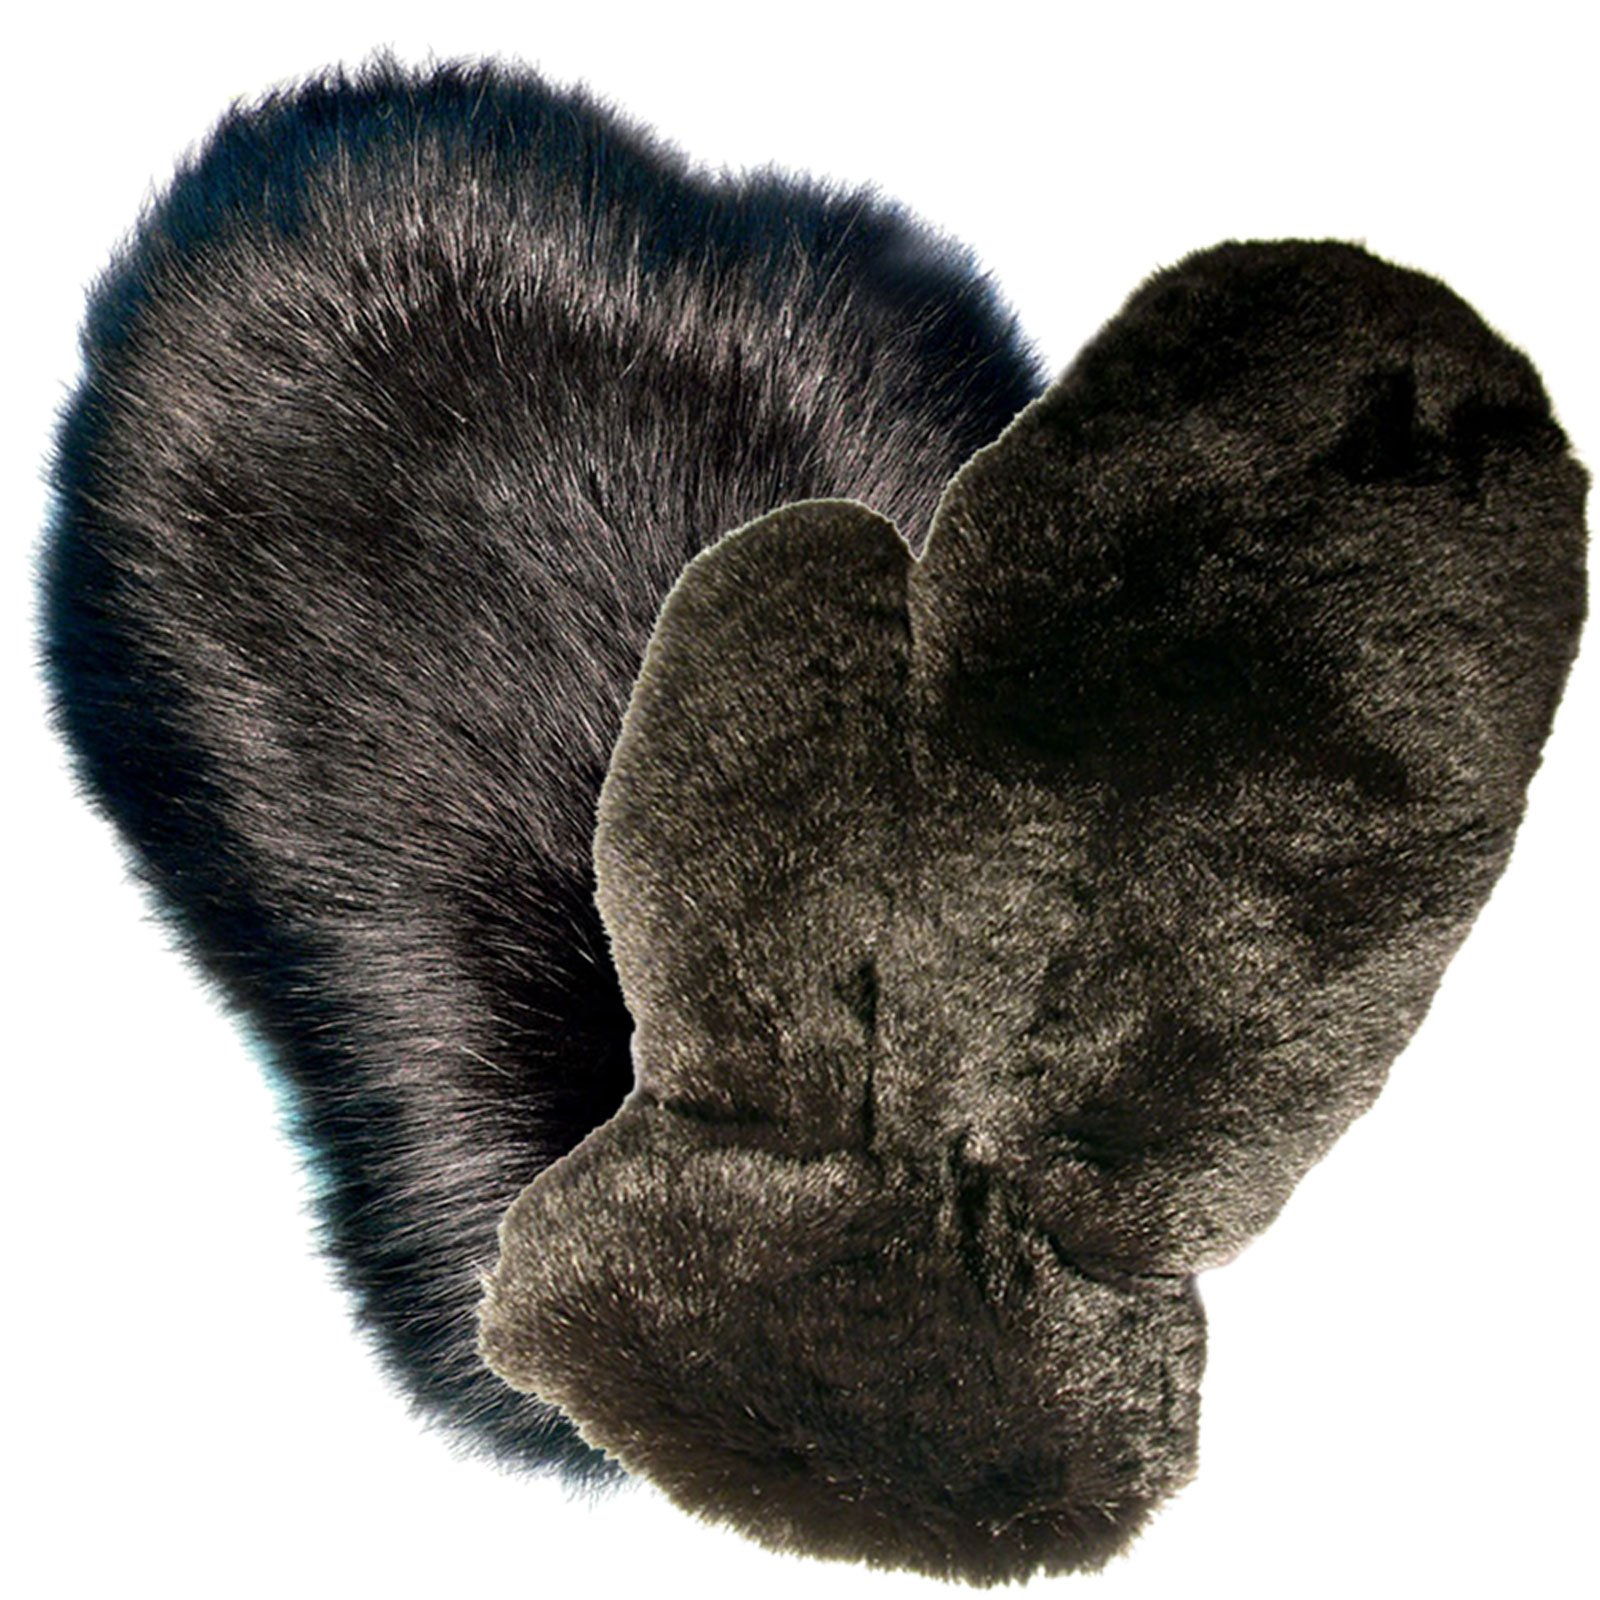 MinkgLove Combination Massage Glove, Fox and Rex Rabbit, Alternating Sensations Silky Smooth and Velvety Soft, Black, Hand Tailored, Unisex - Double Sided Fur